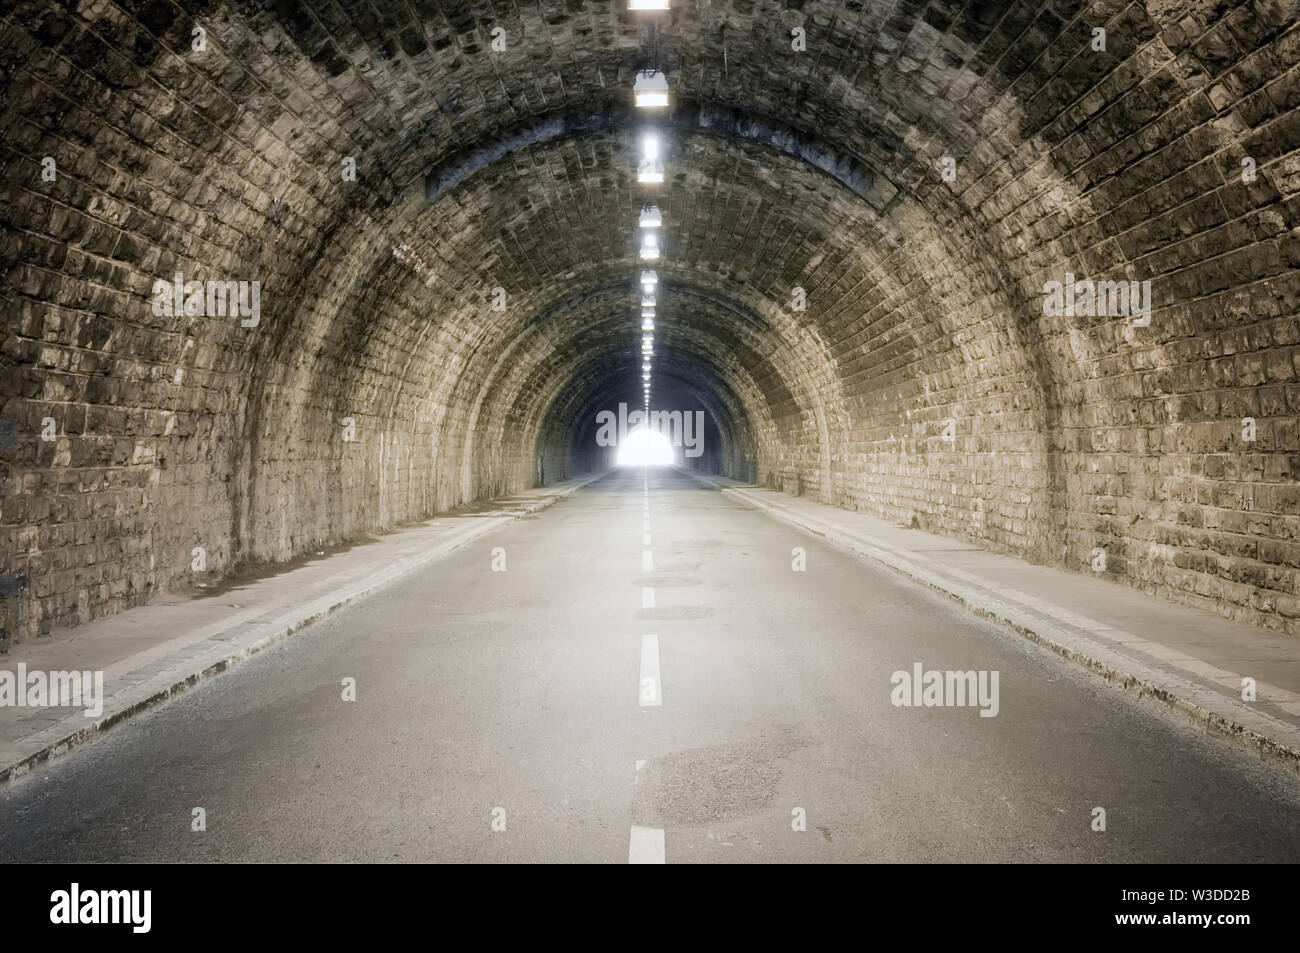 light at the dark tunnel vanishing point end - Stock Image